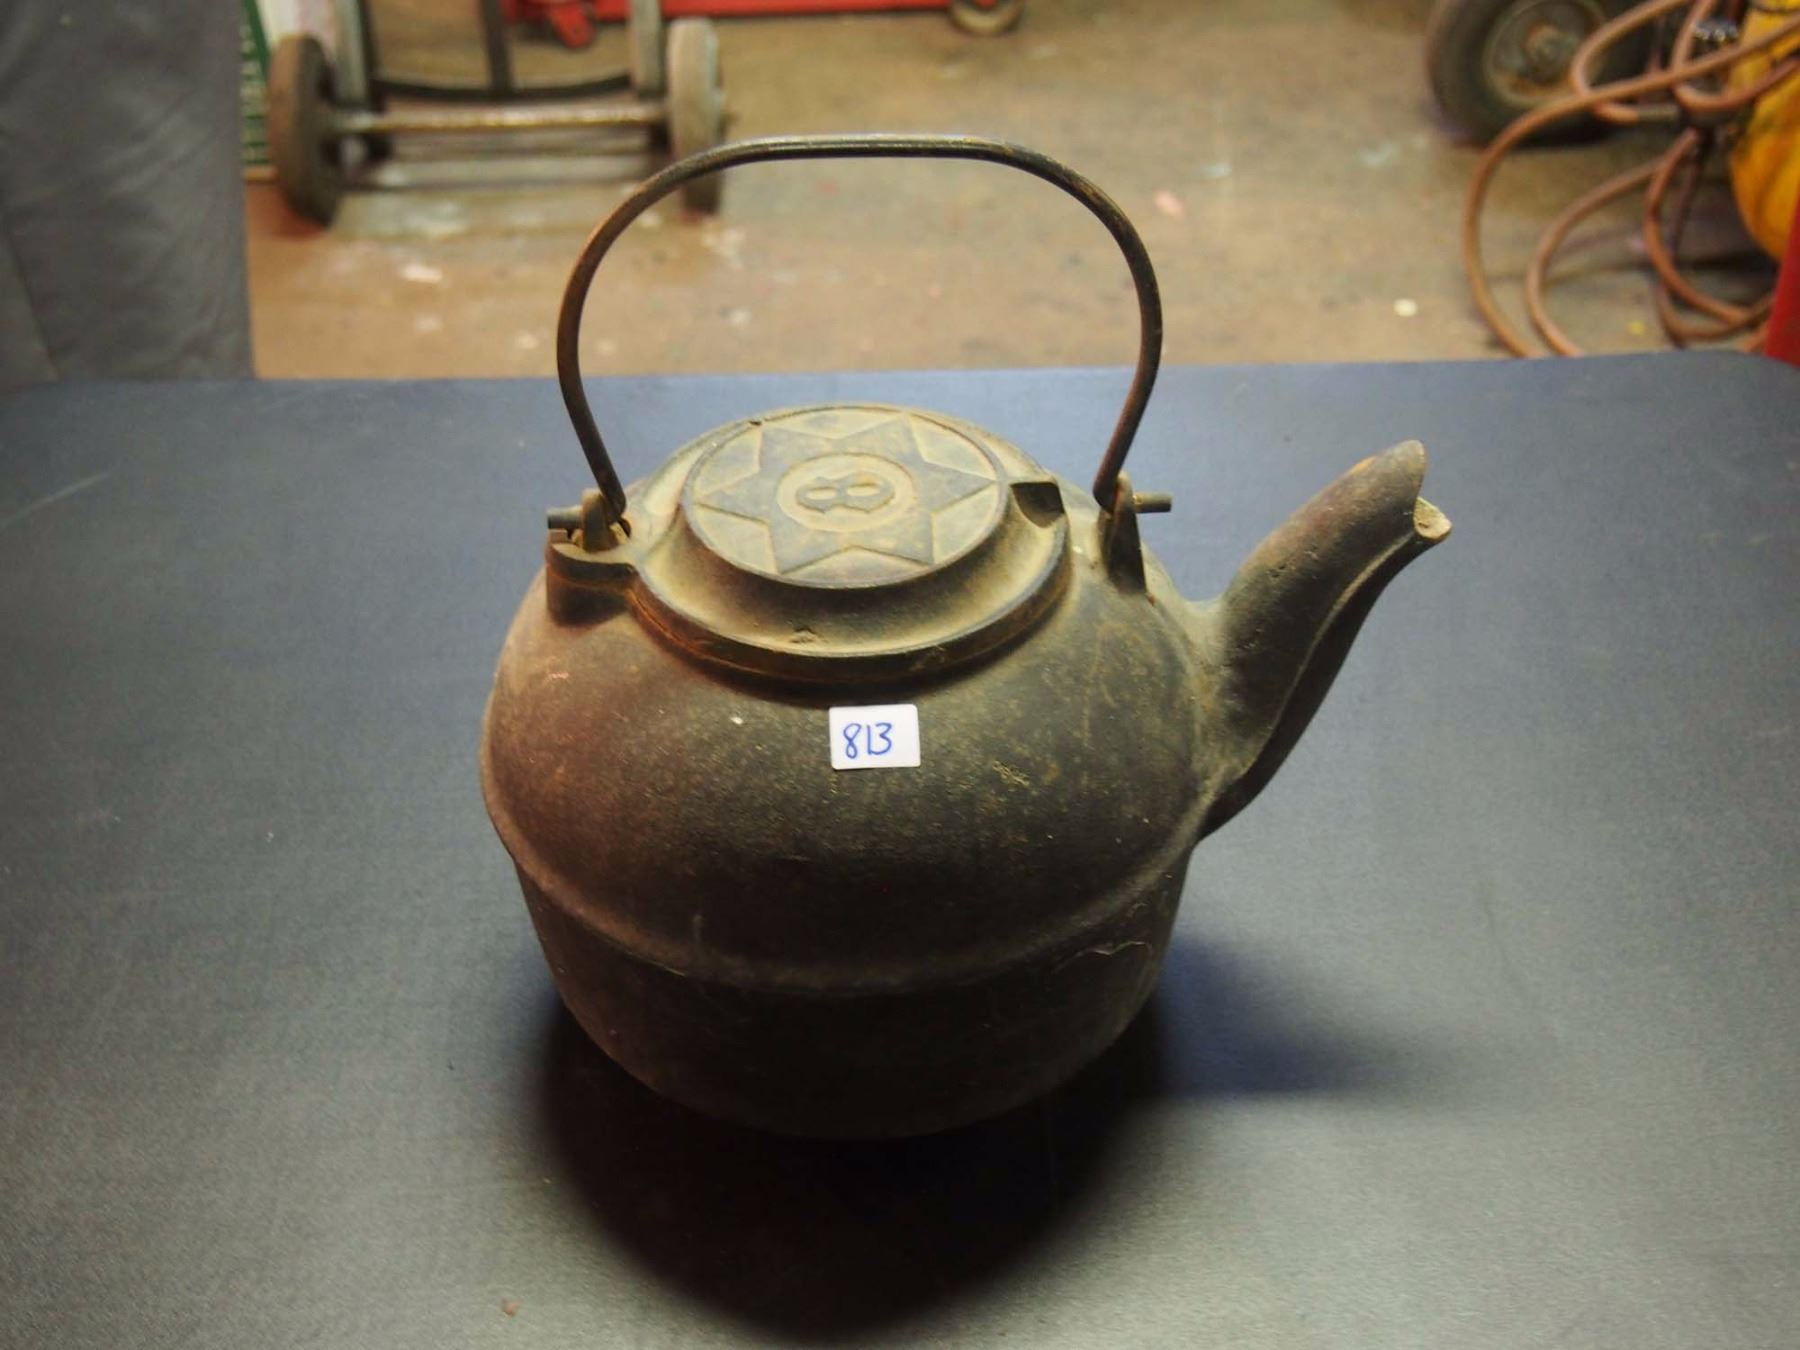 image 1 cast iron kettle 5 star number 8 on top